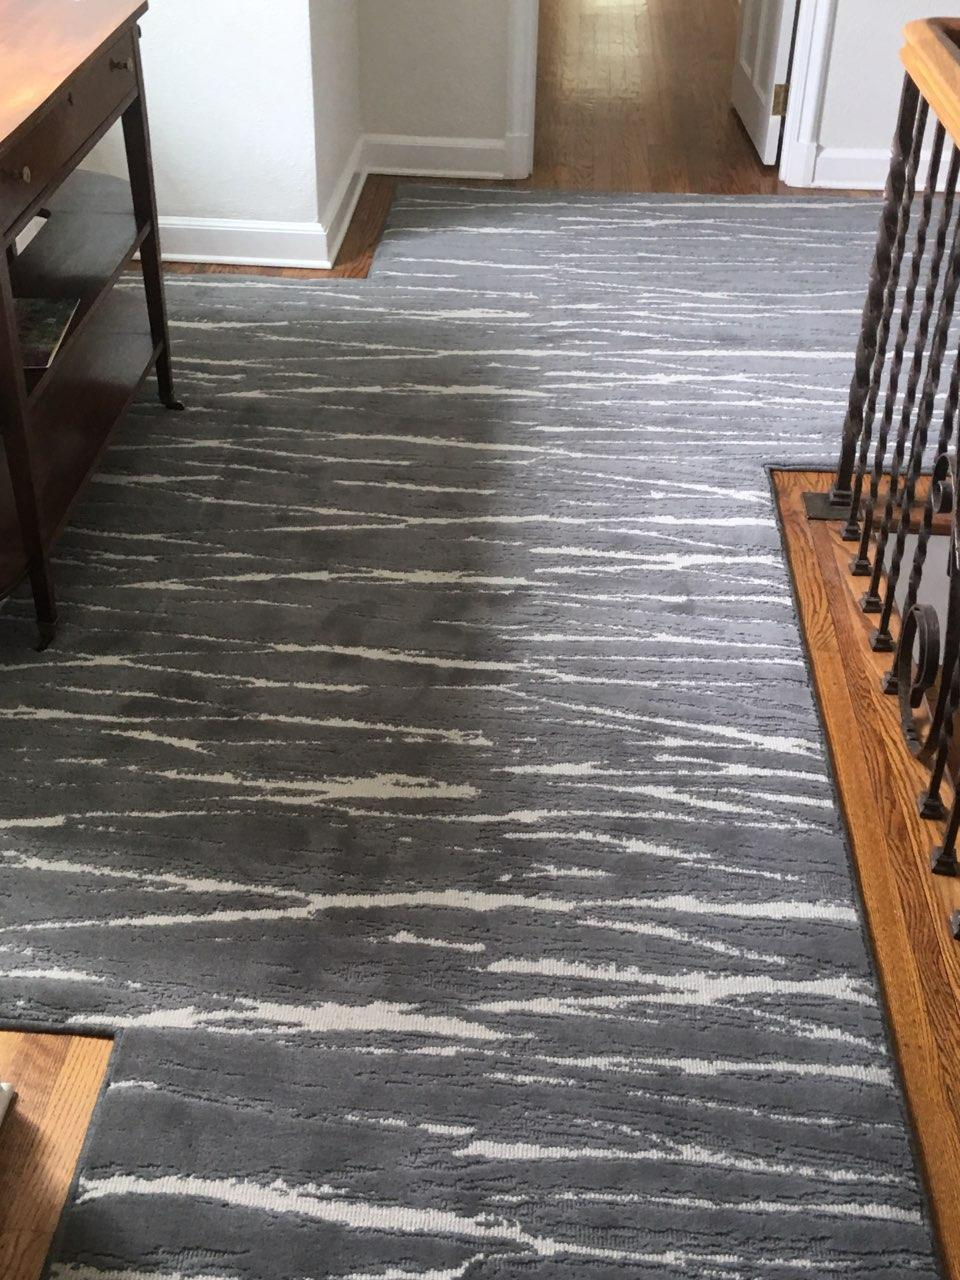 Prism Handcrafted Rugs Rug Cleaning Lutherville MD